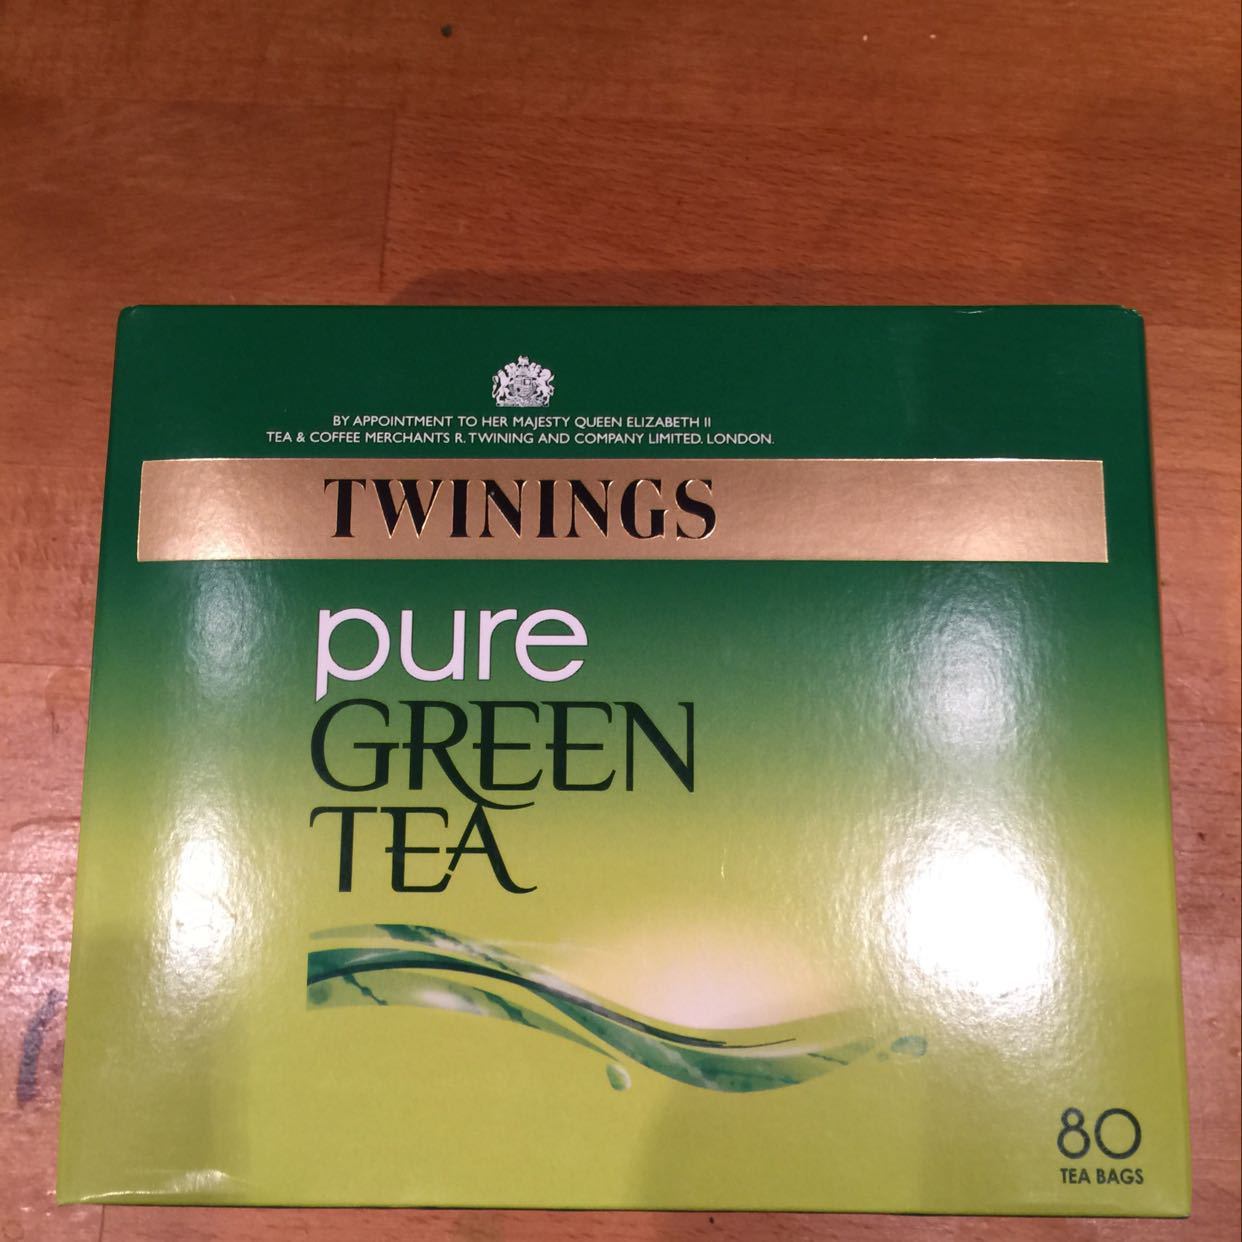 Green tea bags - fresh and unopened. 80 bags